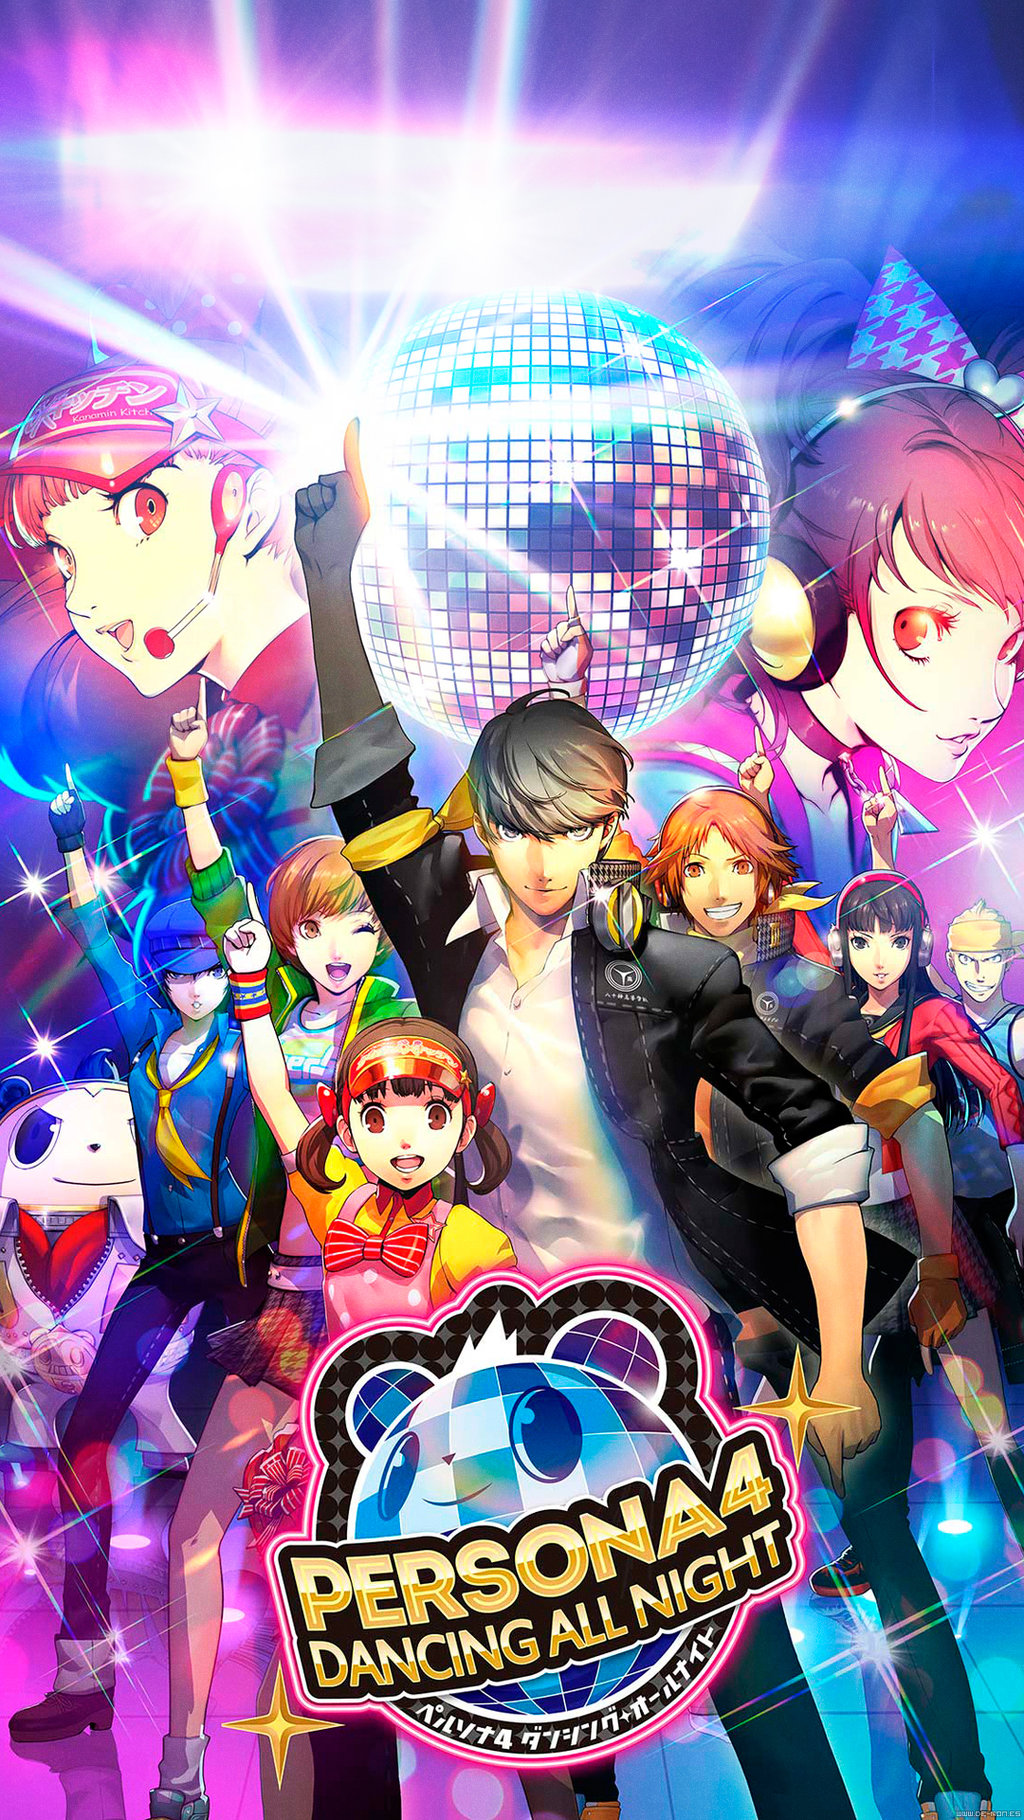 Wallpaper Wednesday Persona 4 Dancing All Night Game Awry